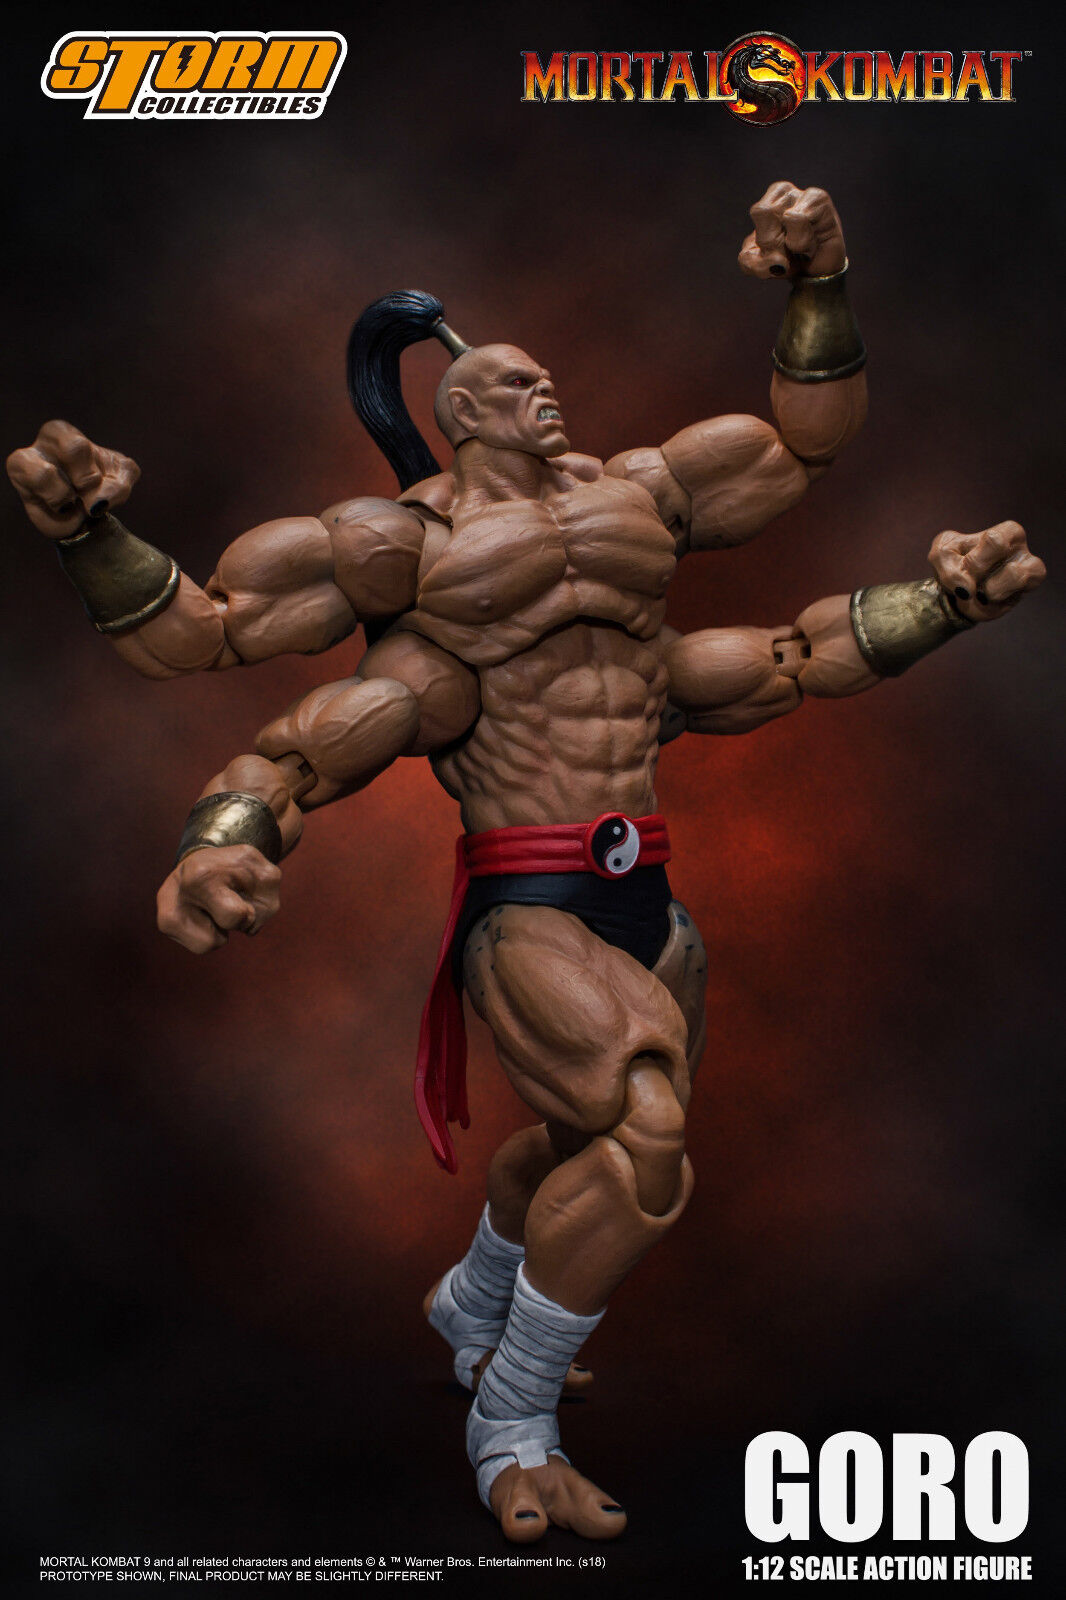 Goro Mortal Kombat Storm Collectibles 1:12 Action Figure AUTHENTIC IN STOCK USA